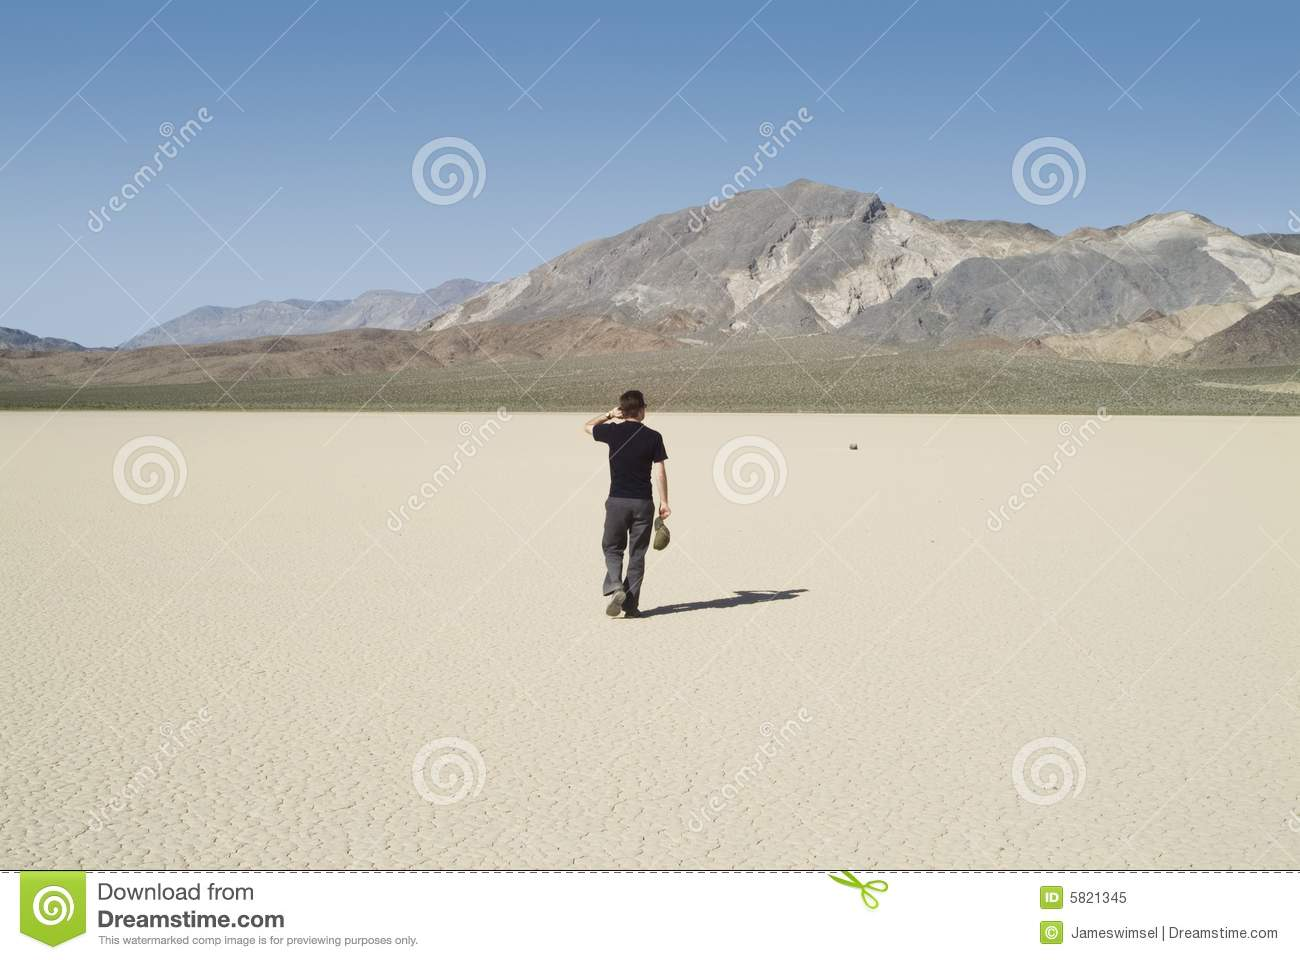 Walking Alone In The Desert Royalty Free Stock Photo - Image: 5821345